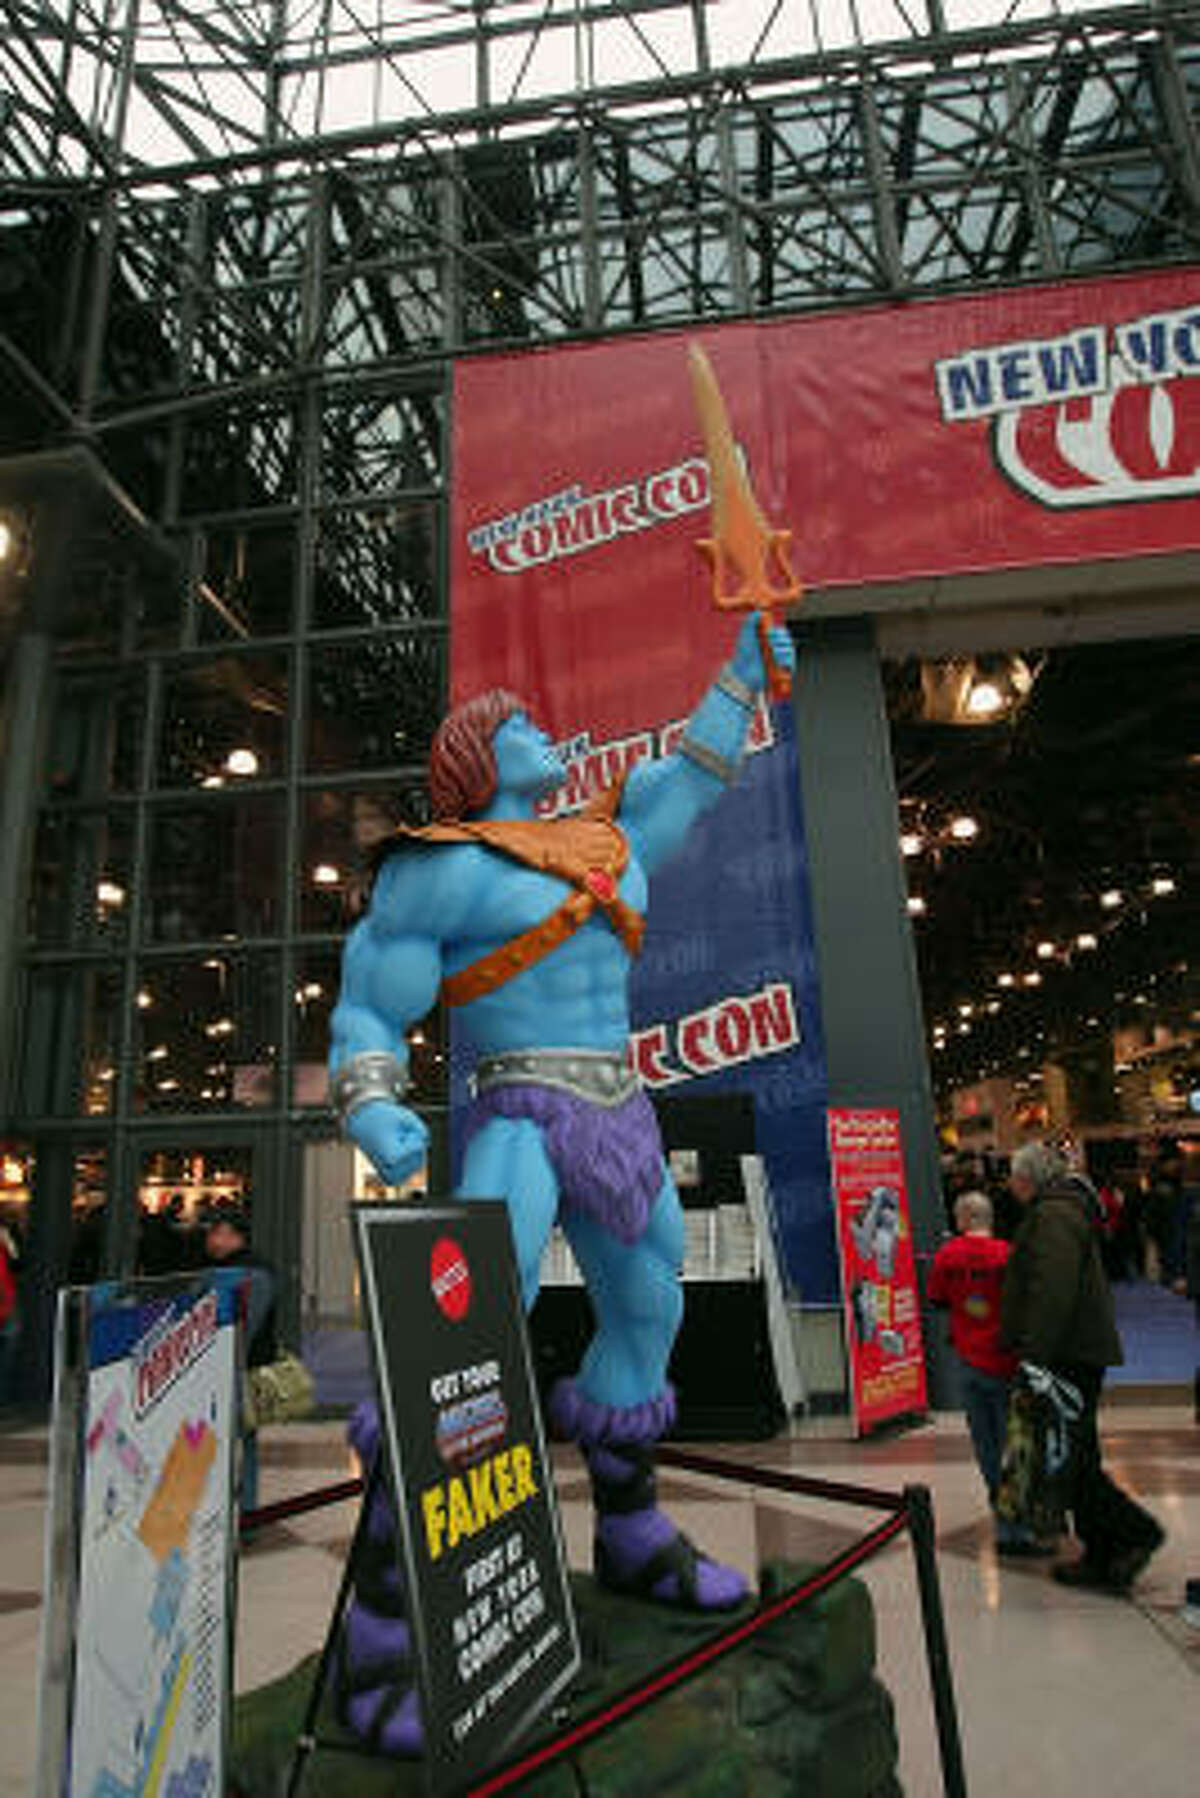 A powerful display at the first day of the 2009 New York Comic Con at the Jacob Javits Center on Saturday, Feb. 6, 2009, in New York City.